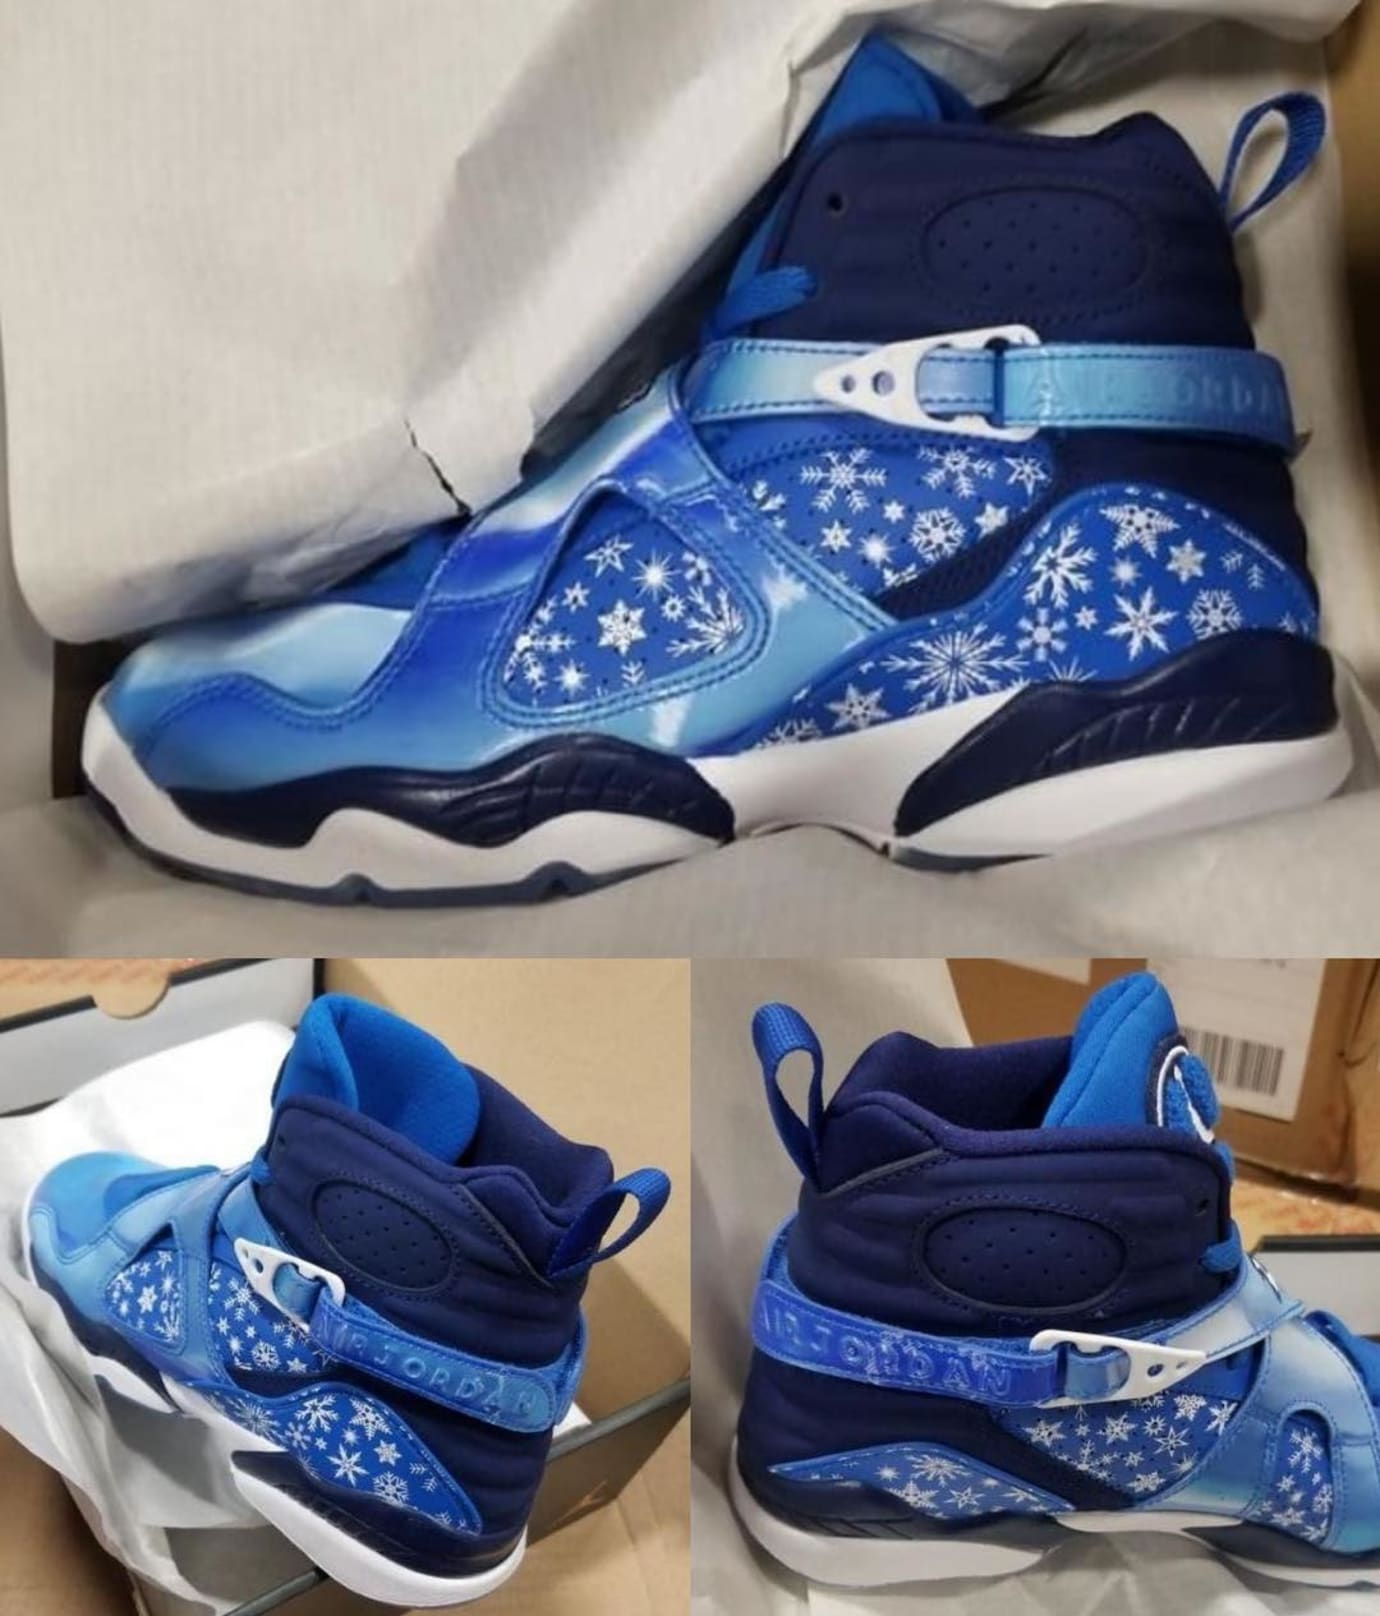 hot sales 132ff 523ad Air Jordan 8 VIII Snowflake Release Date 305368-400 | Sole ...